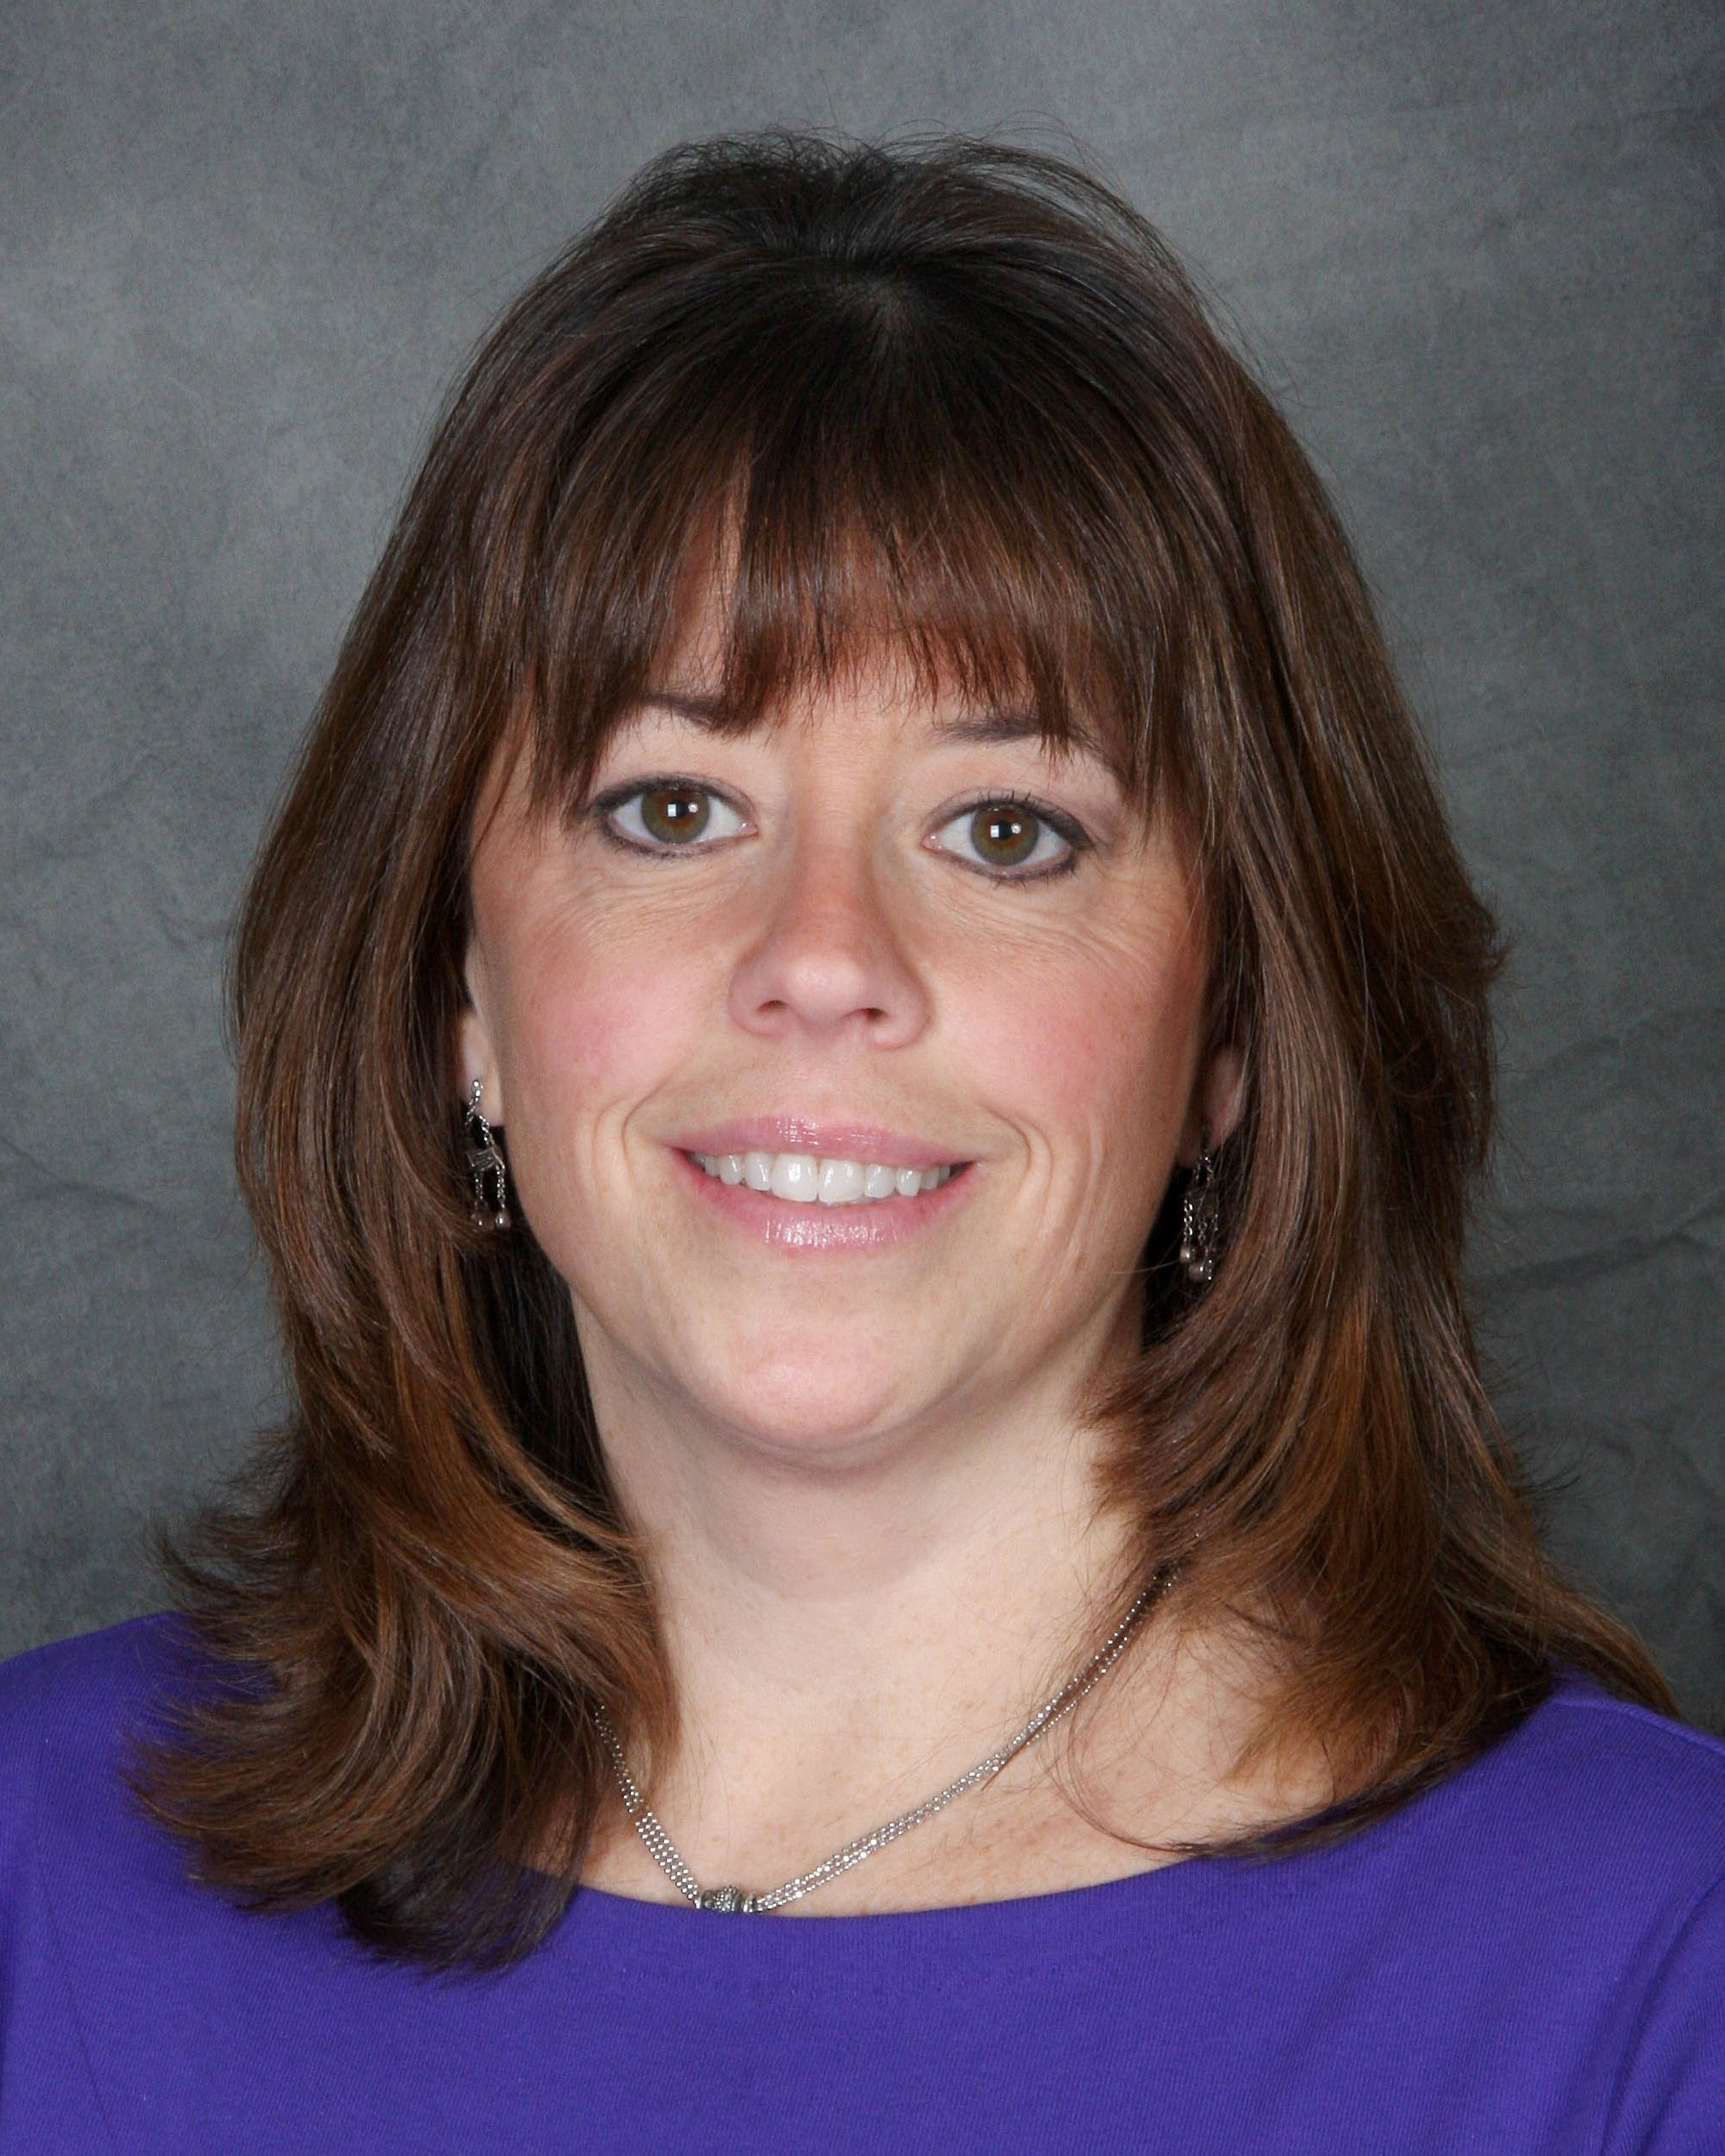 Theresa Alesso, Sony Electronics' Pro Division President, Honored by Working Mother Magazine